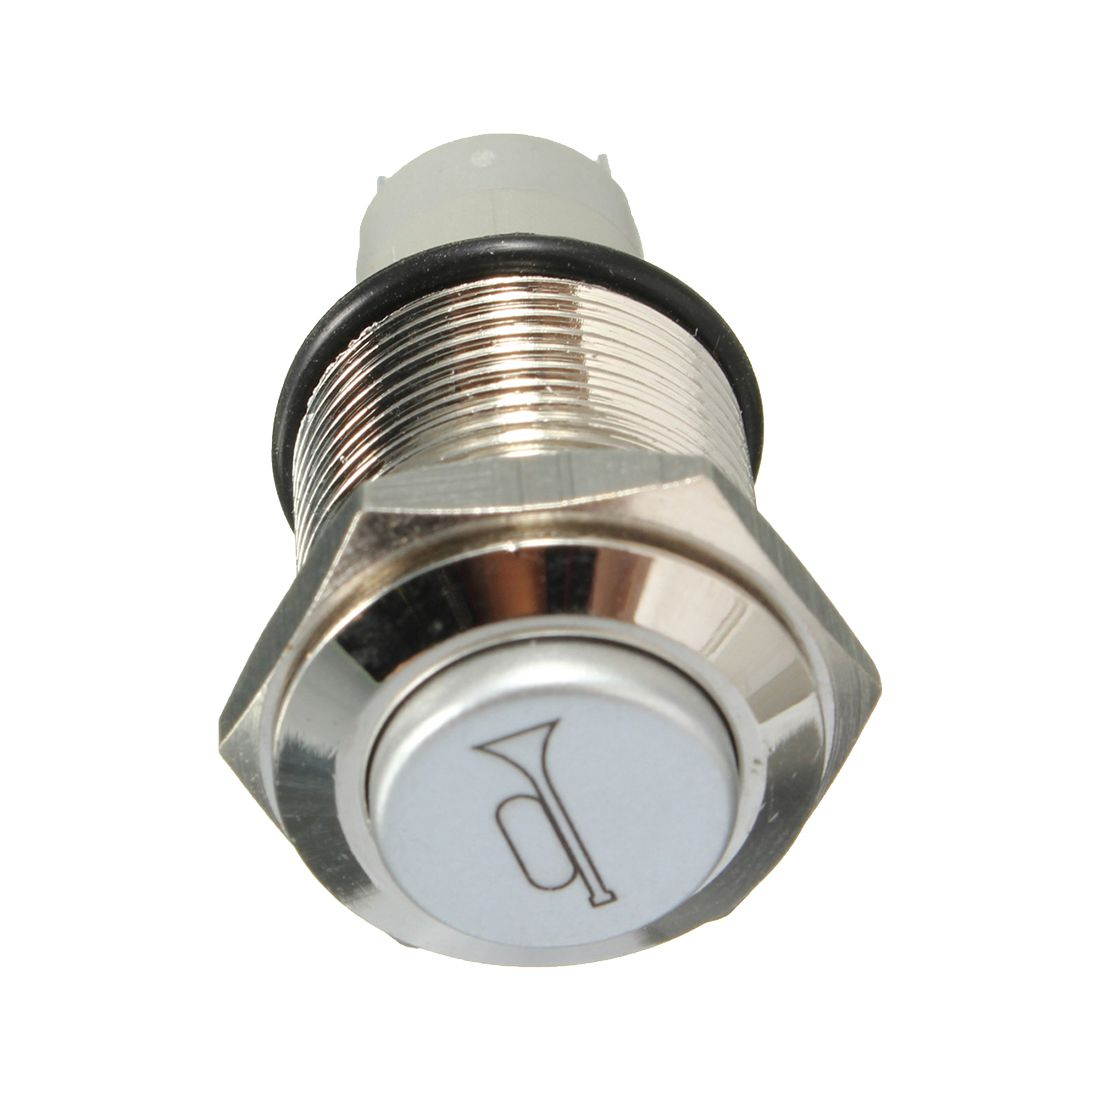 12v 16mm Car Led Light Momentary Horn Button Metal Switch. Stone And Brick Homes. Modern Arbor. Home Decorations Collections. Dry Creek Bed. Range Backsplash. Cost To Renovate Kitchen. Over Bed Art. Storage Console Table